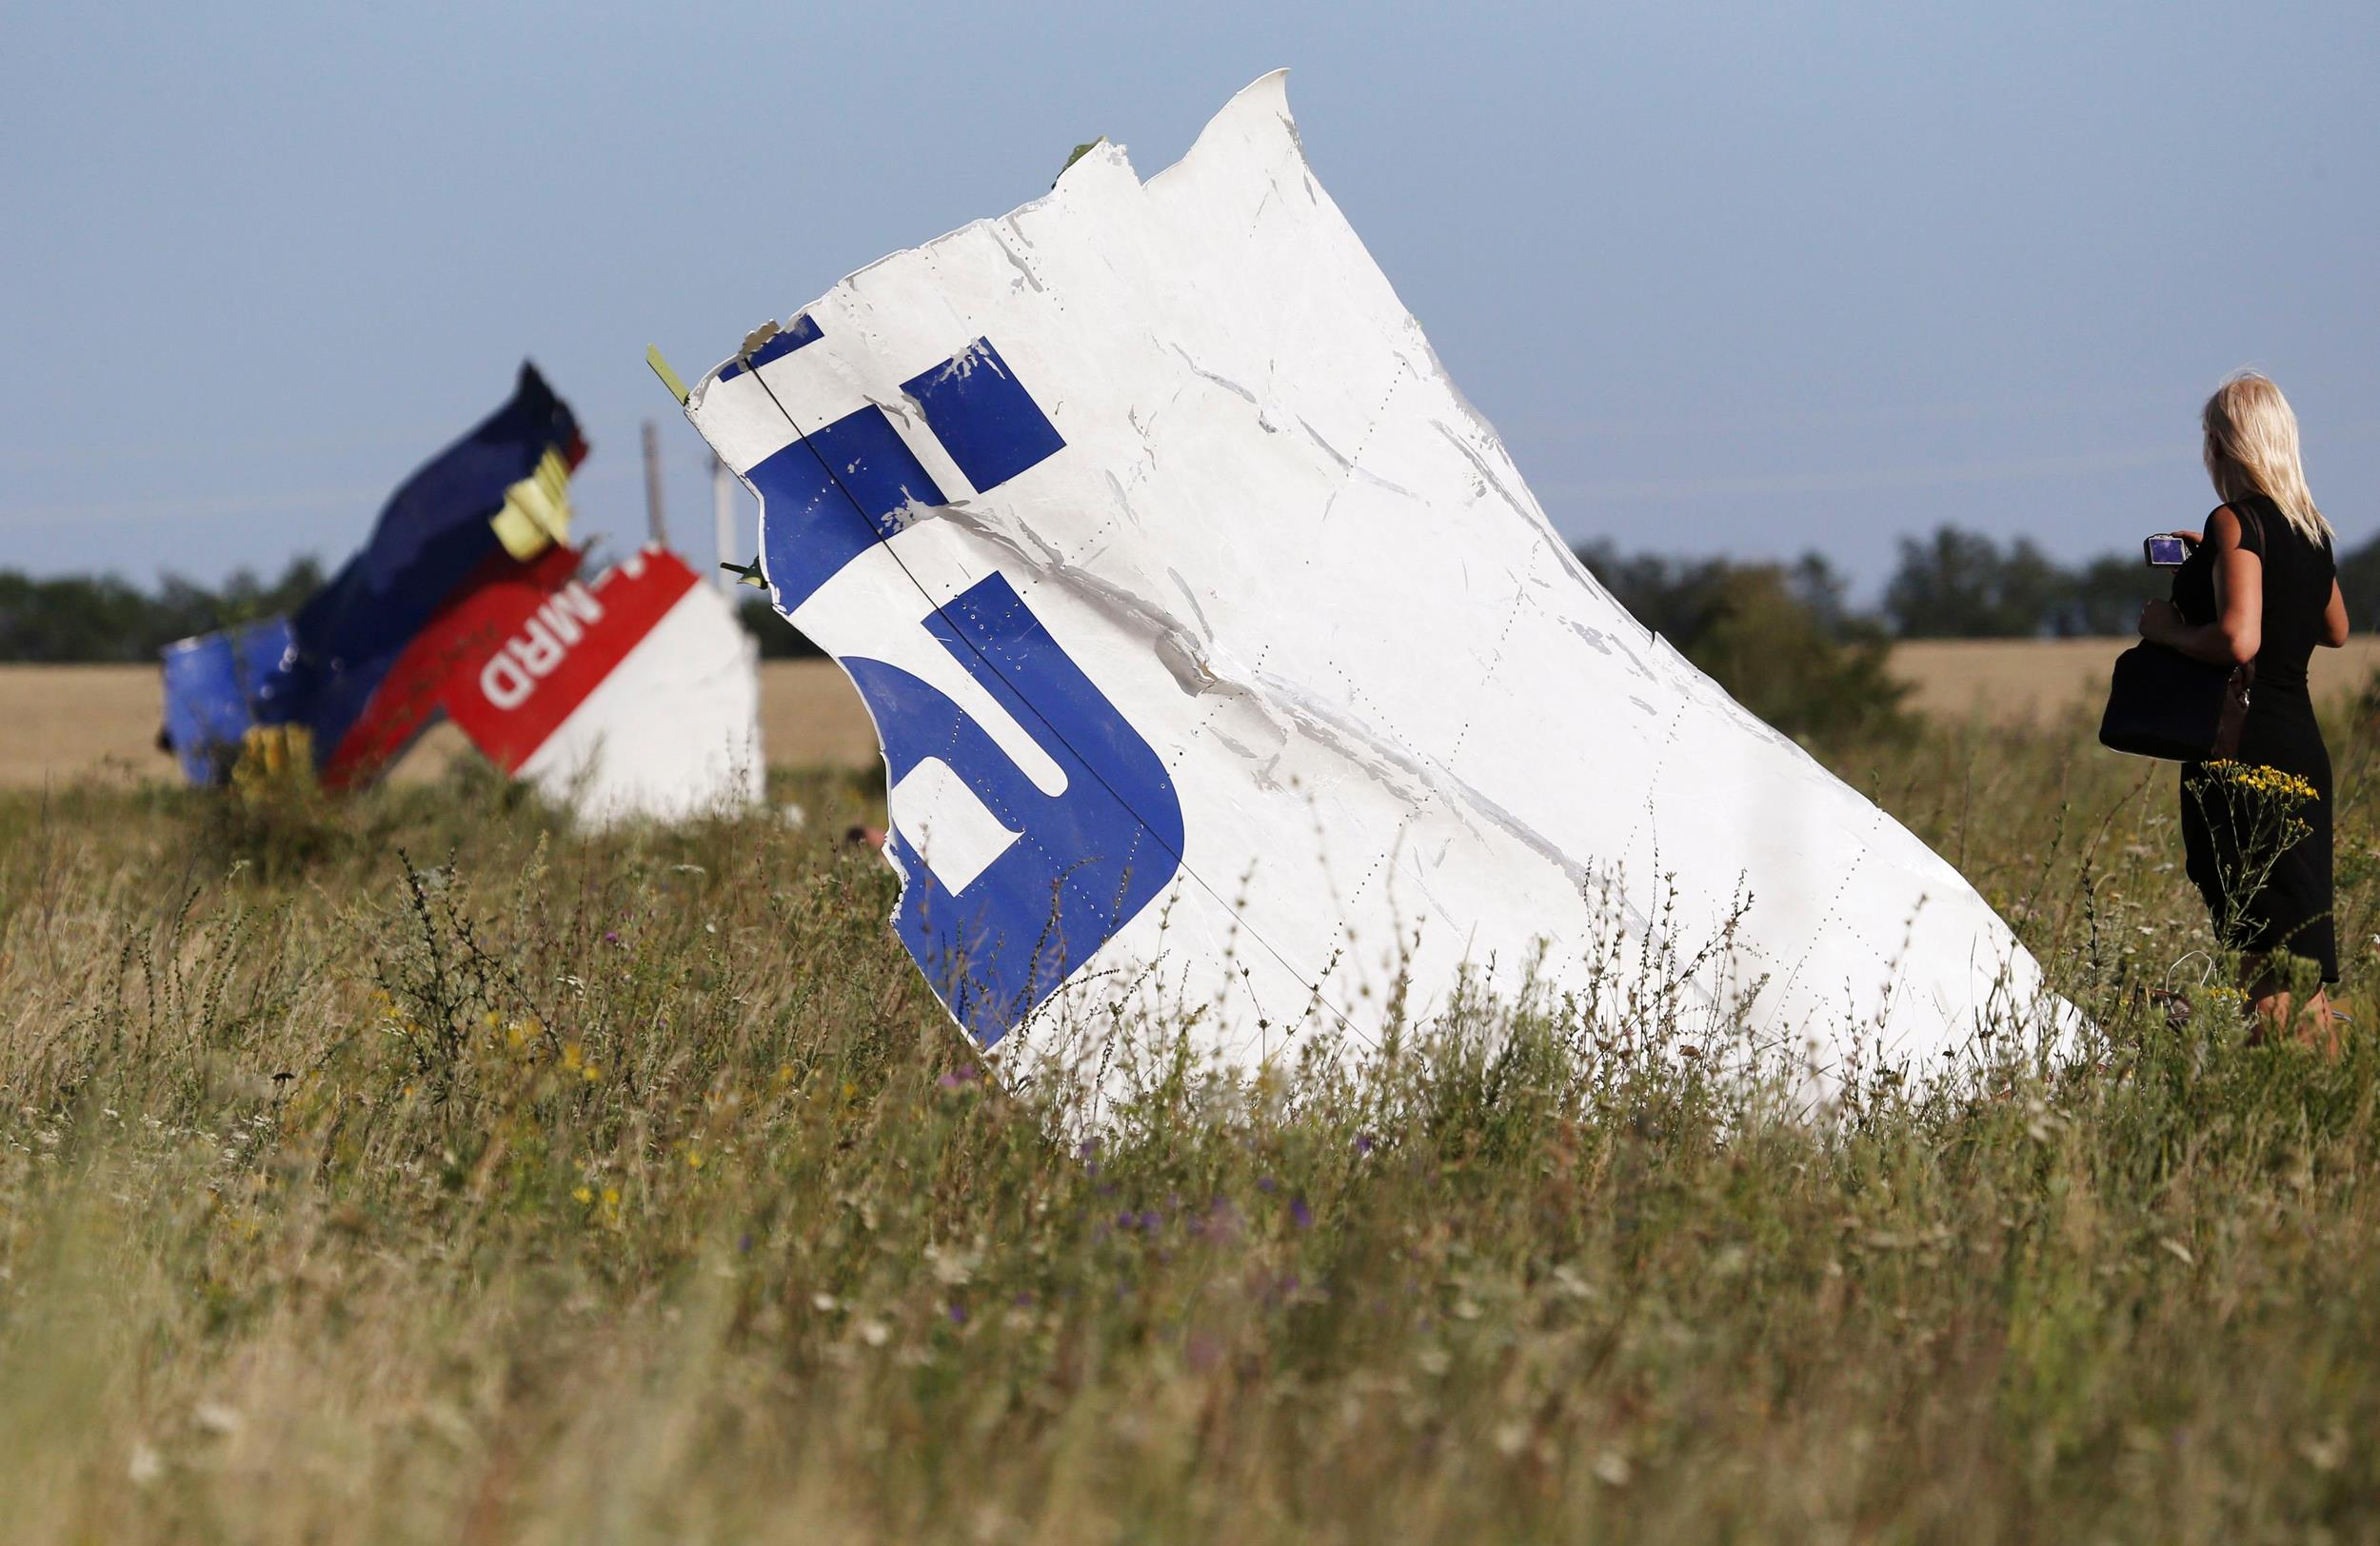 Image: A woman takes a photograph of wreckage at the crash site of Malaysia Airlines Flight MH17 near the village of Hrabove (Grabovo)